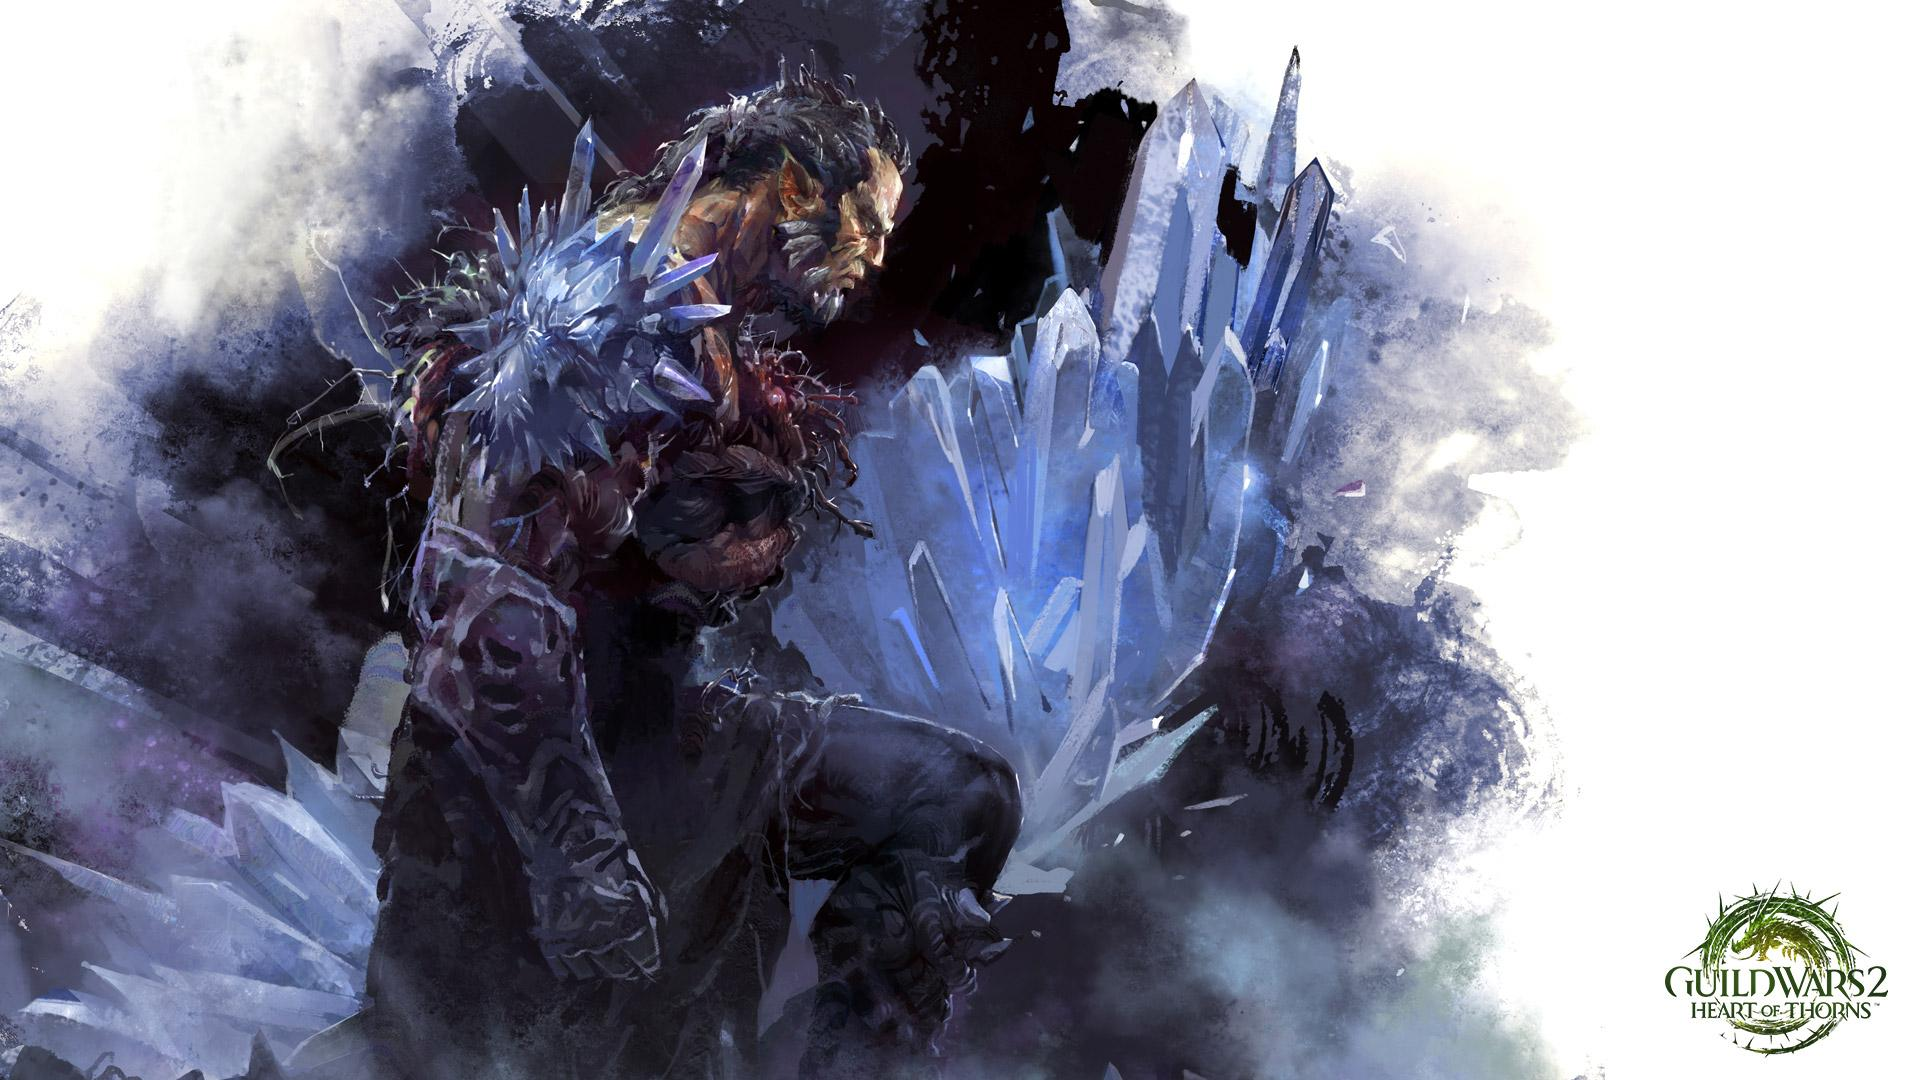 Guild Wars 2 Battle Monster Games Fantasy Warrior – Fondos de Pantalla